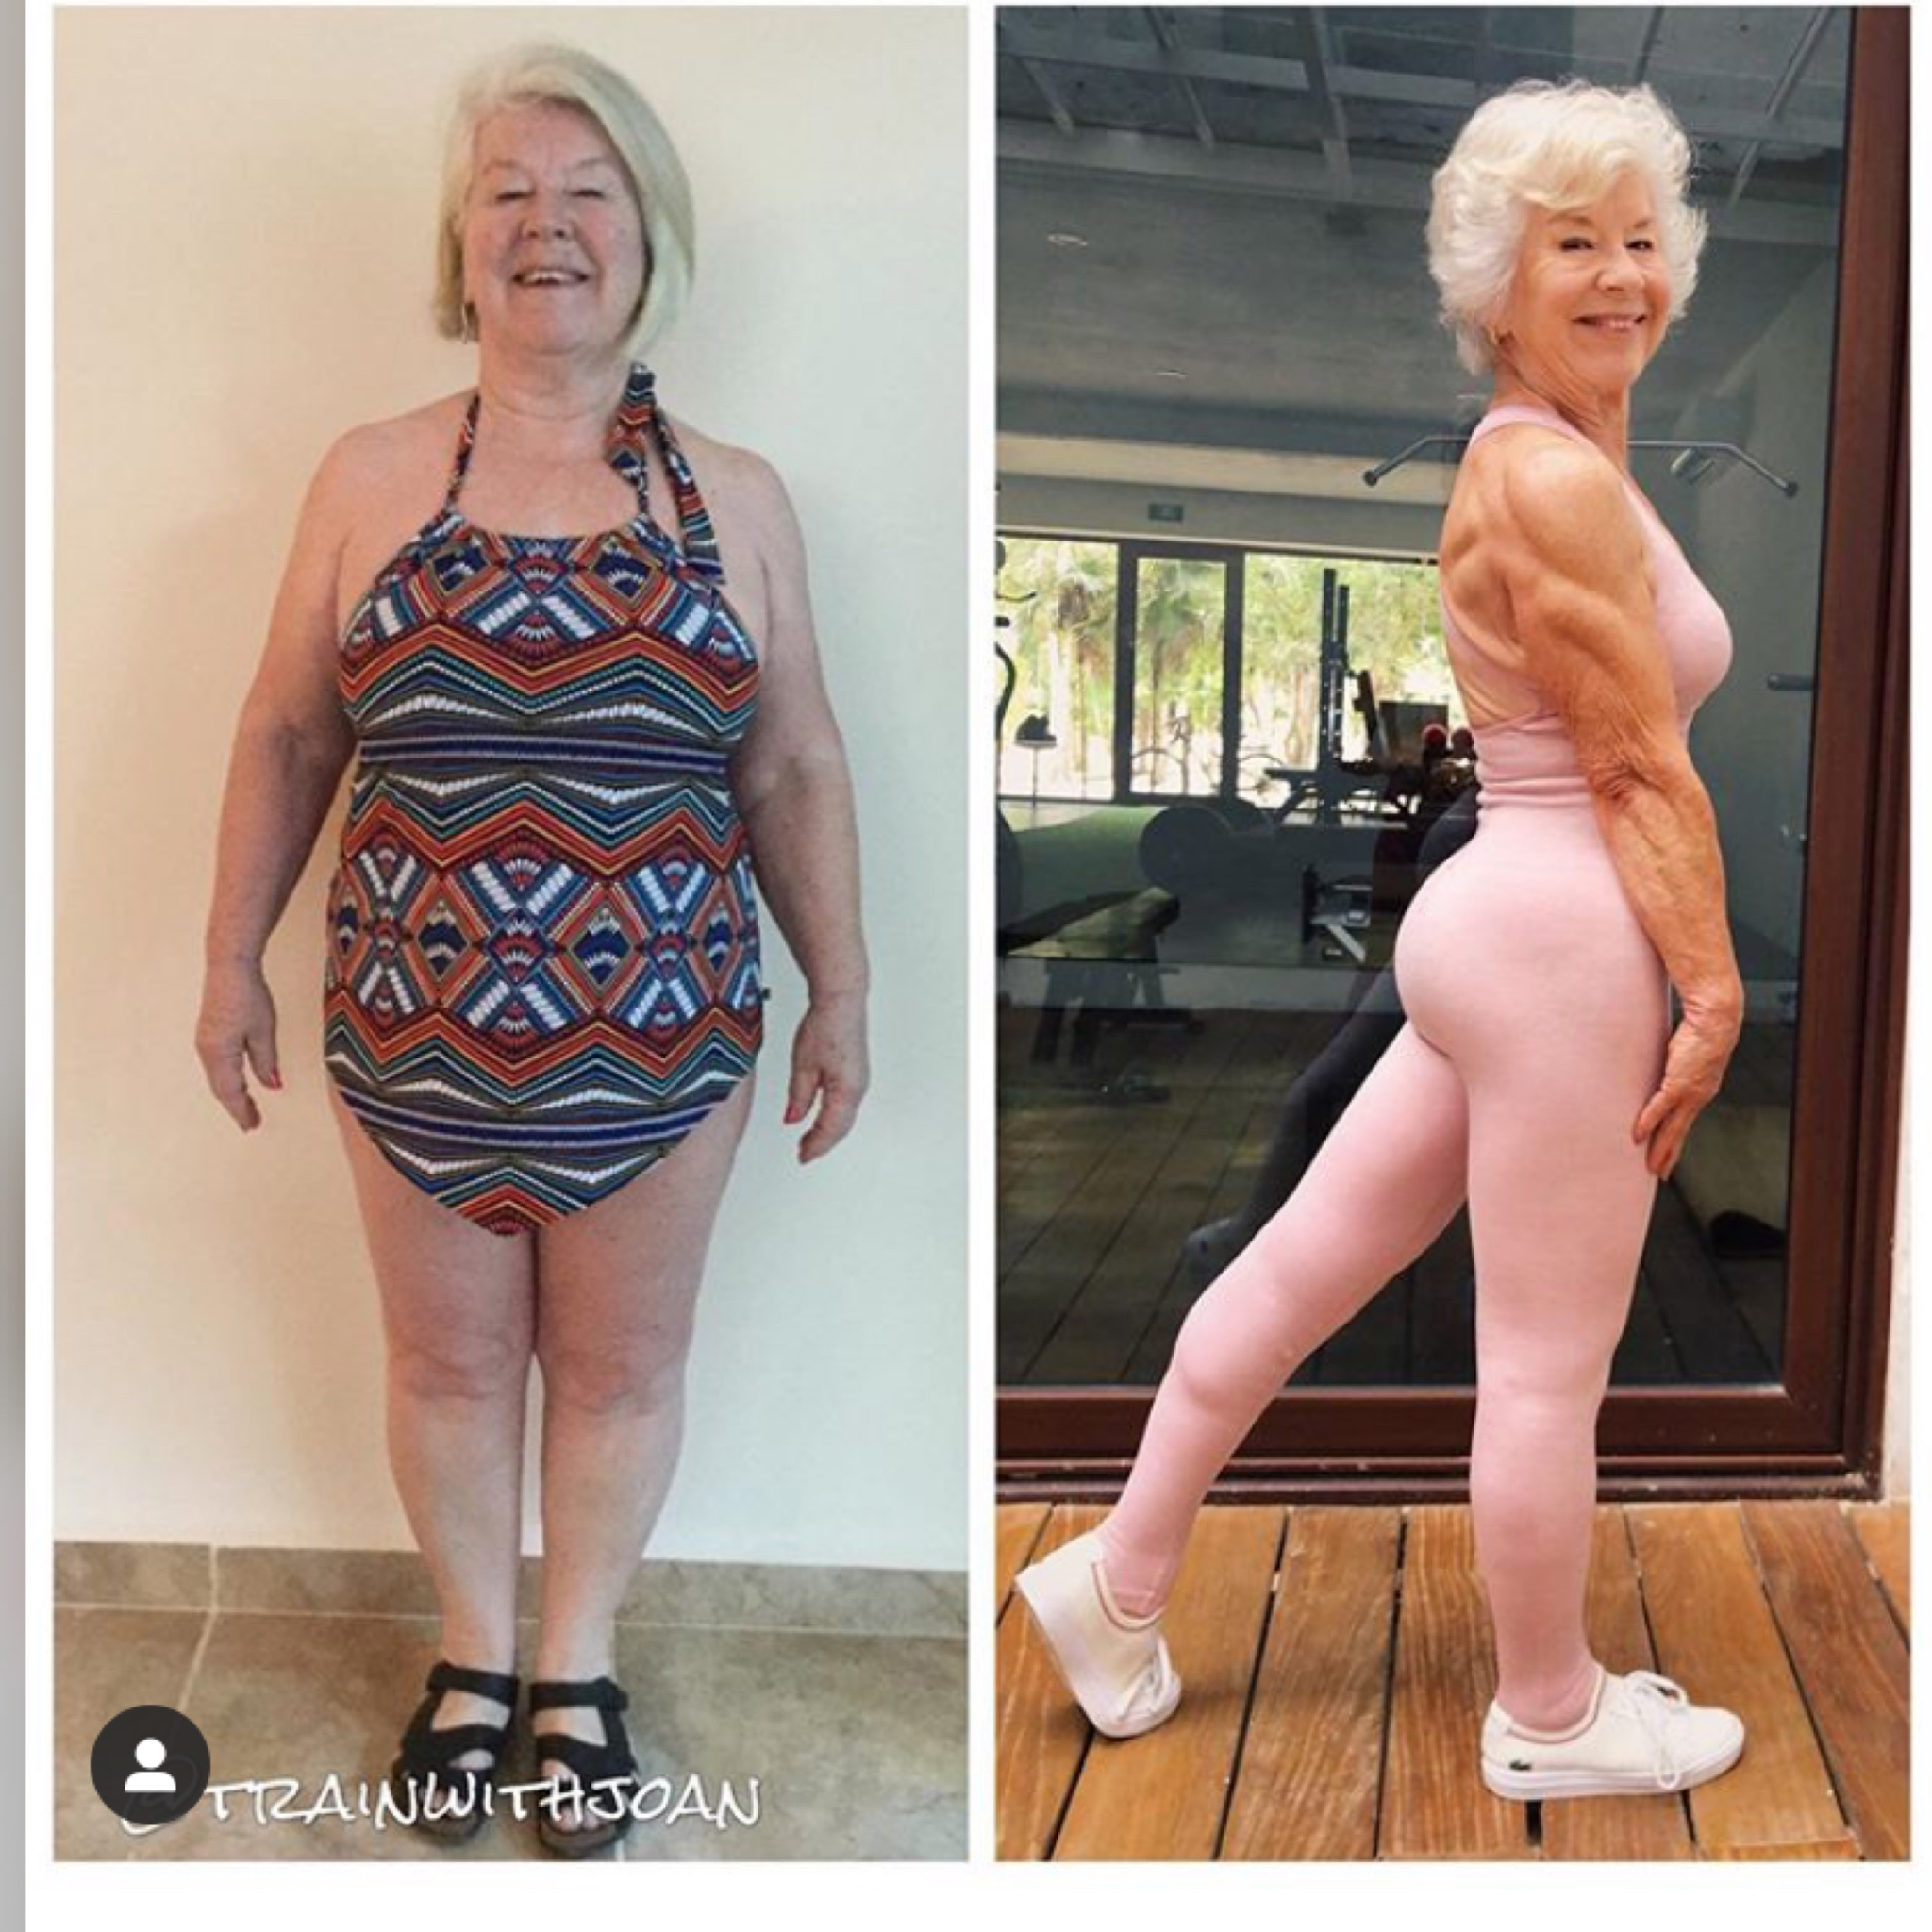 [image] This Grandma decided to get in shape